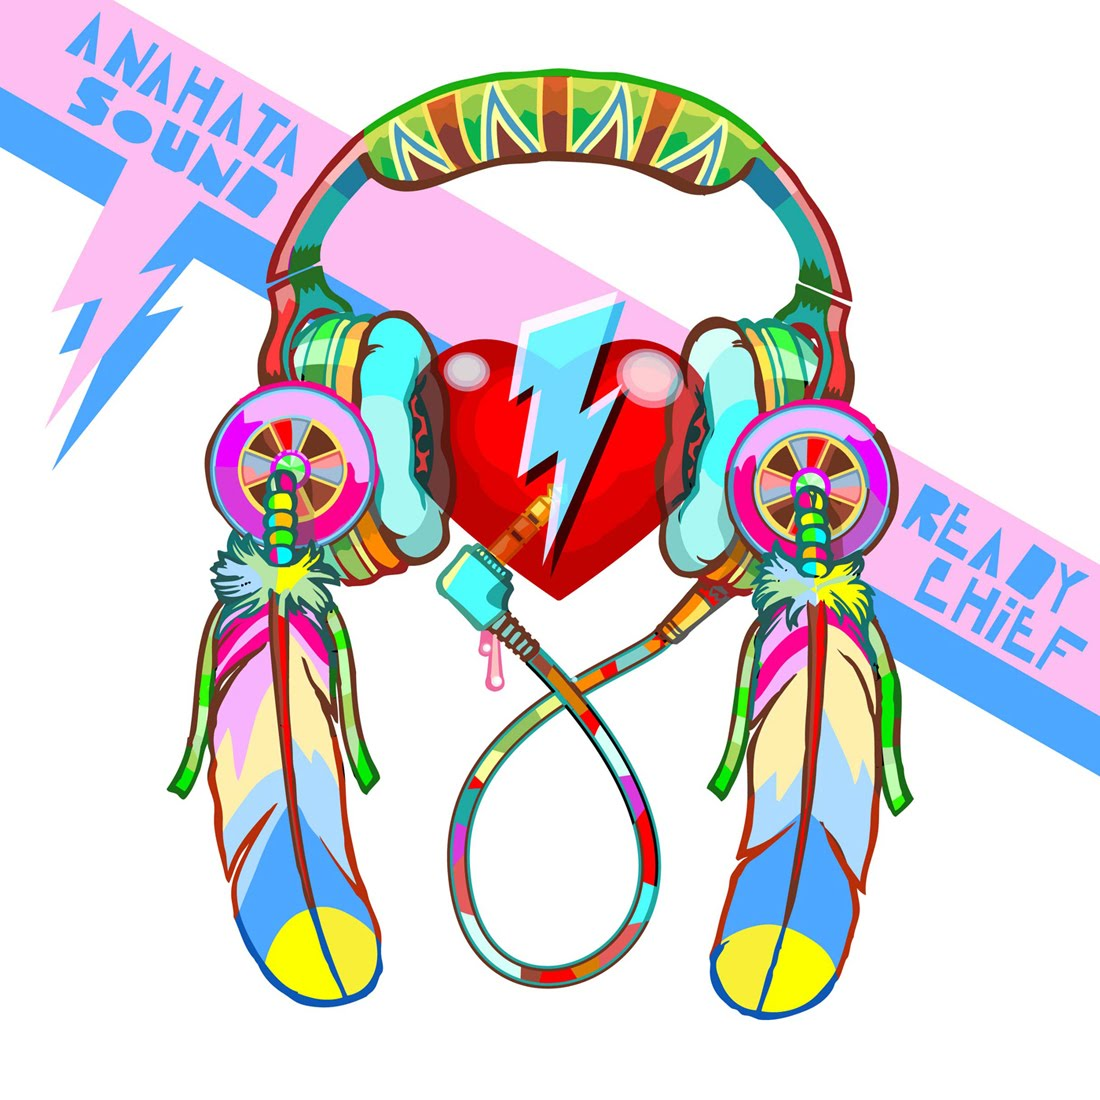 GYPSYPOP!: Ready Chief by Anahata Sound is OUT!